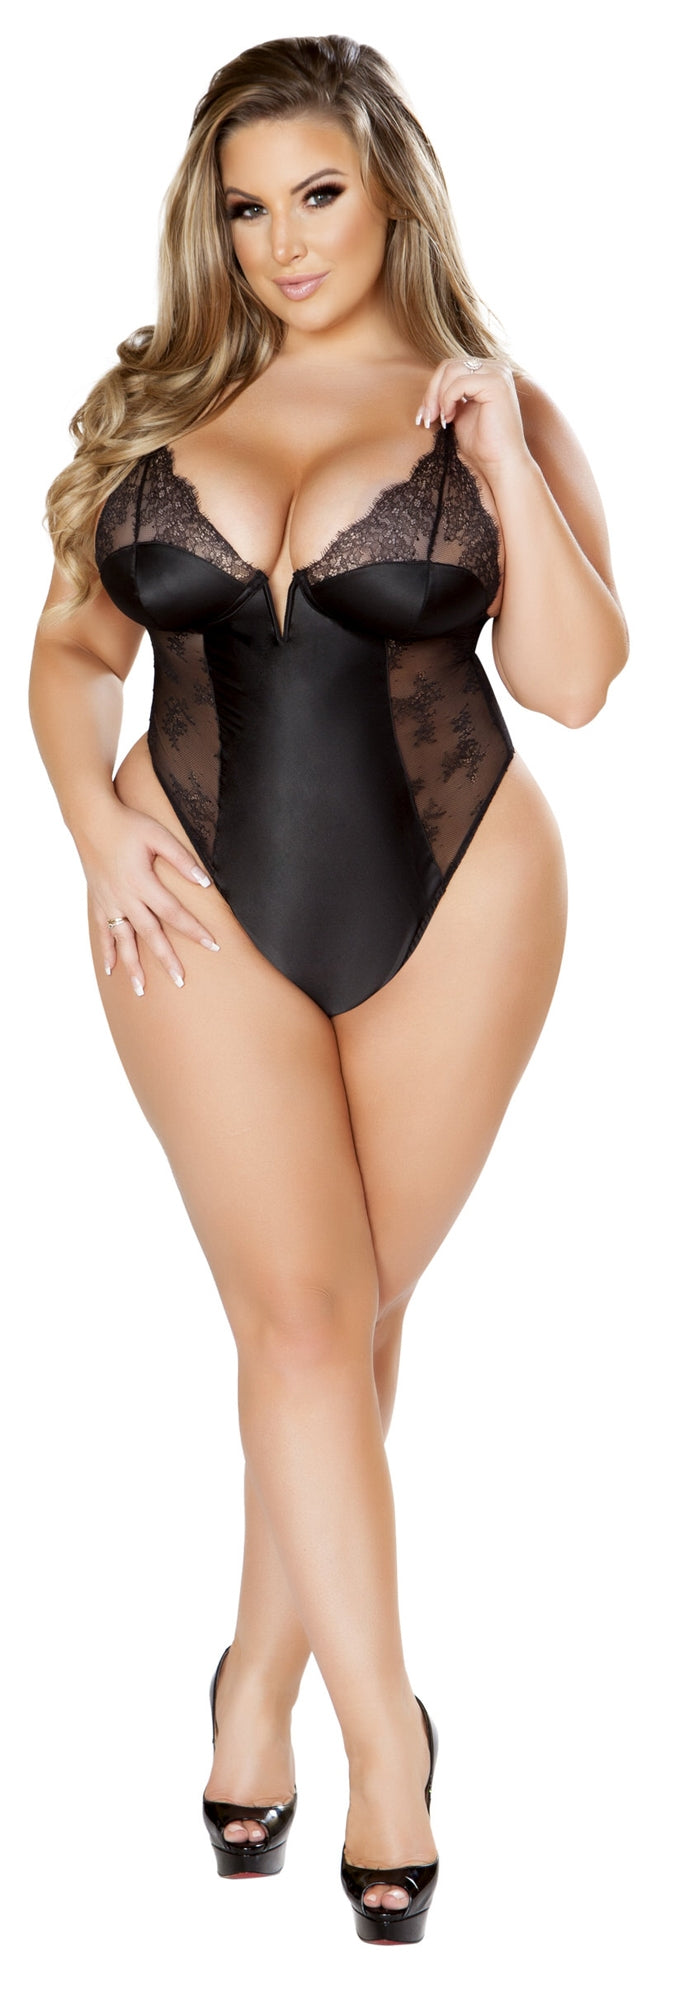 RMLI220 Lace and satin black teddy plus front